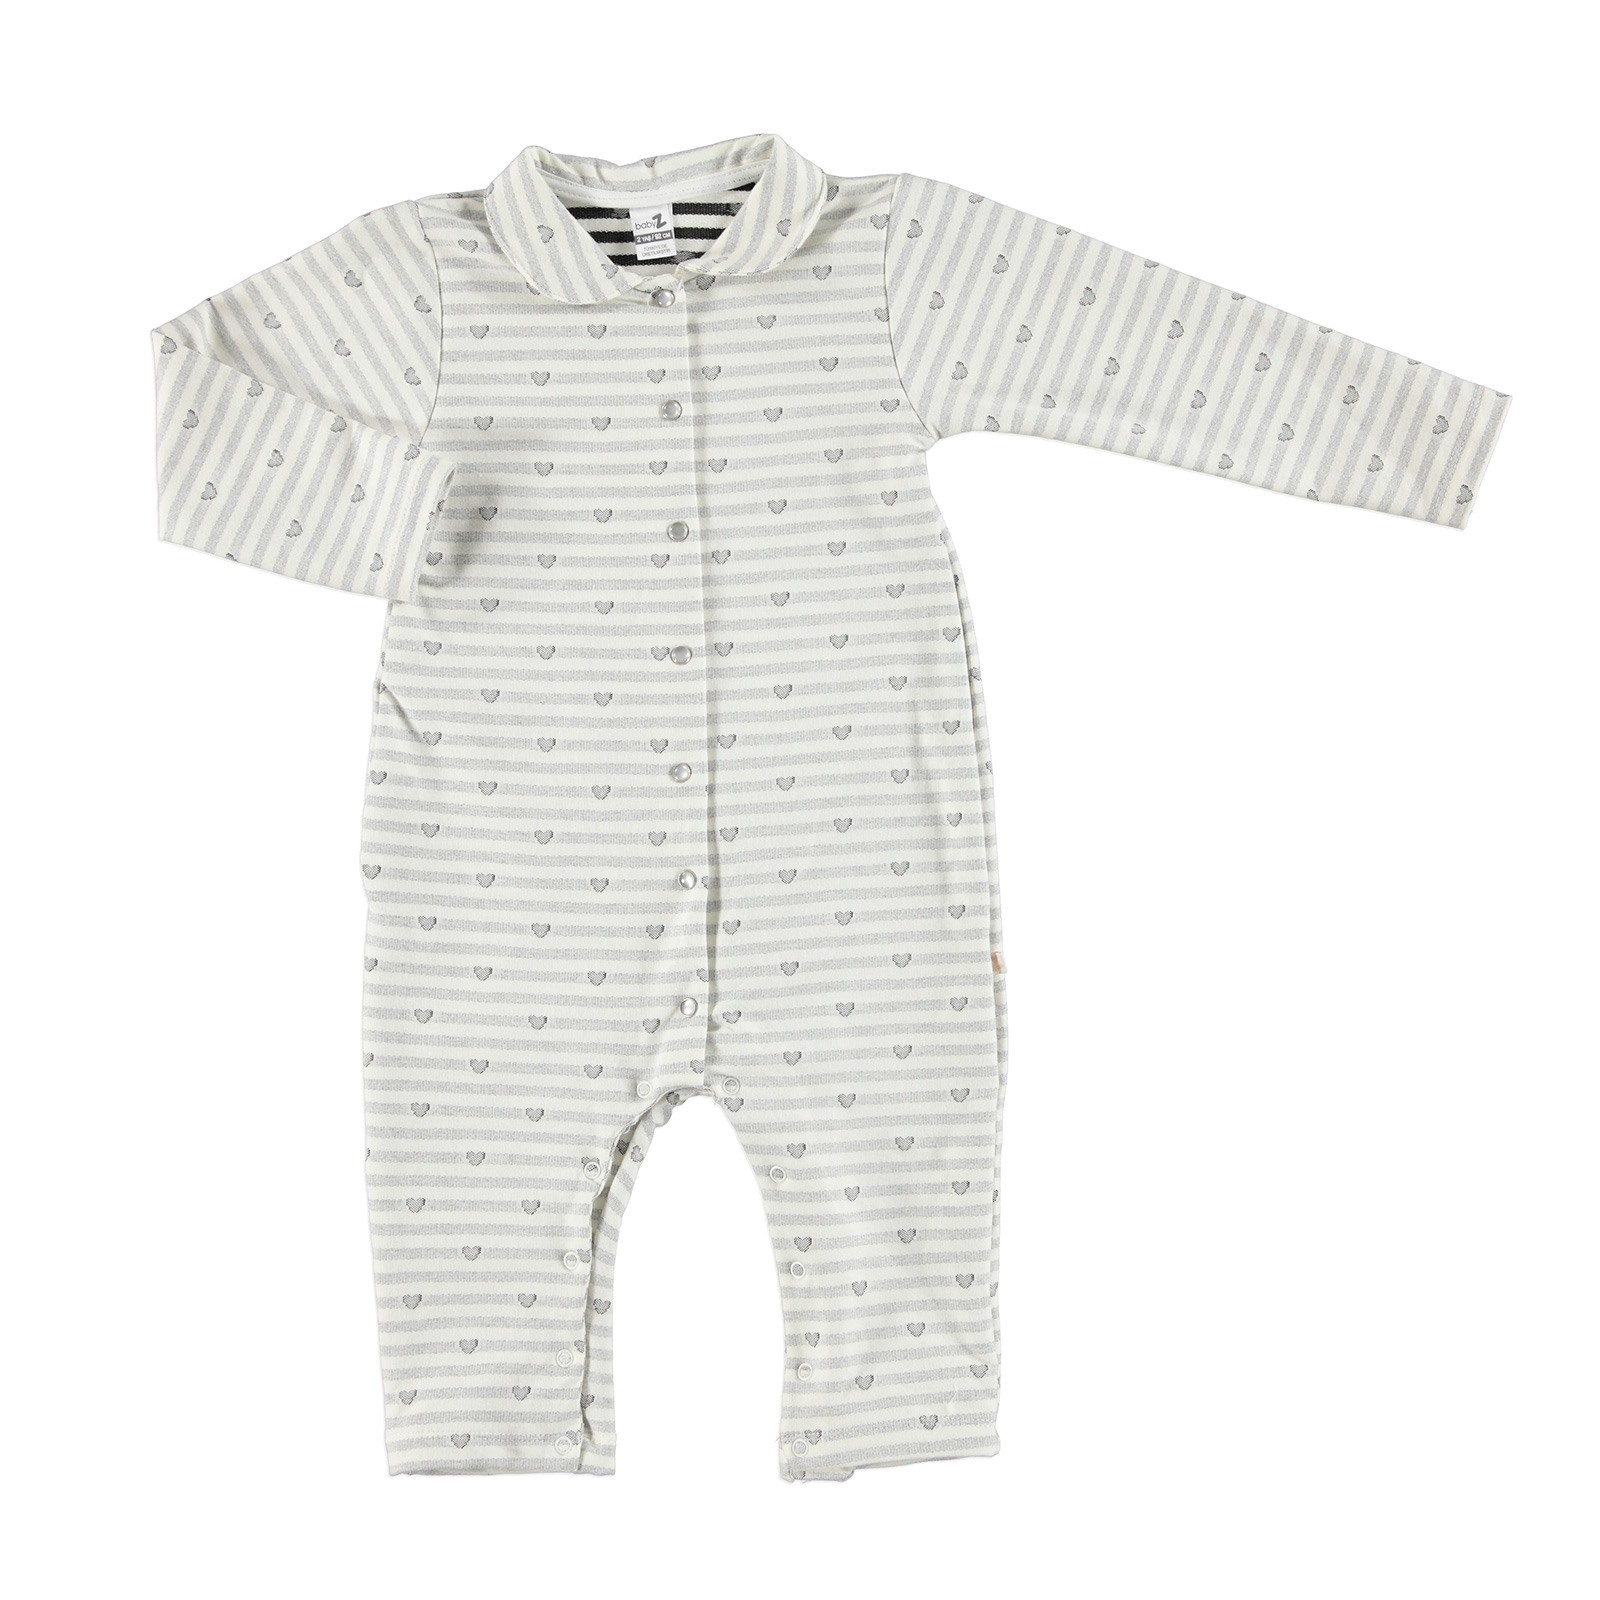 Ebebek BabyZ Heart Button Detail Footless Romper